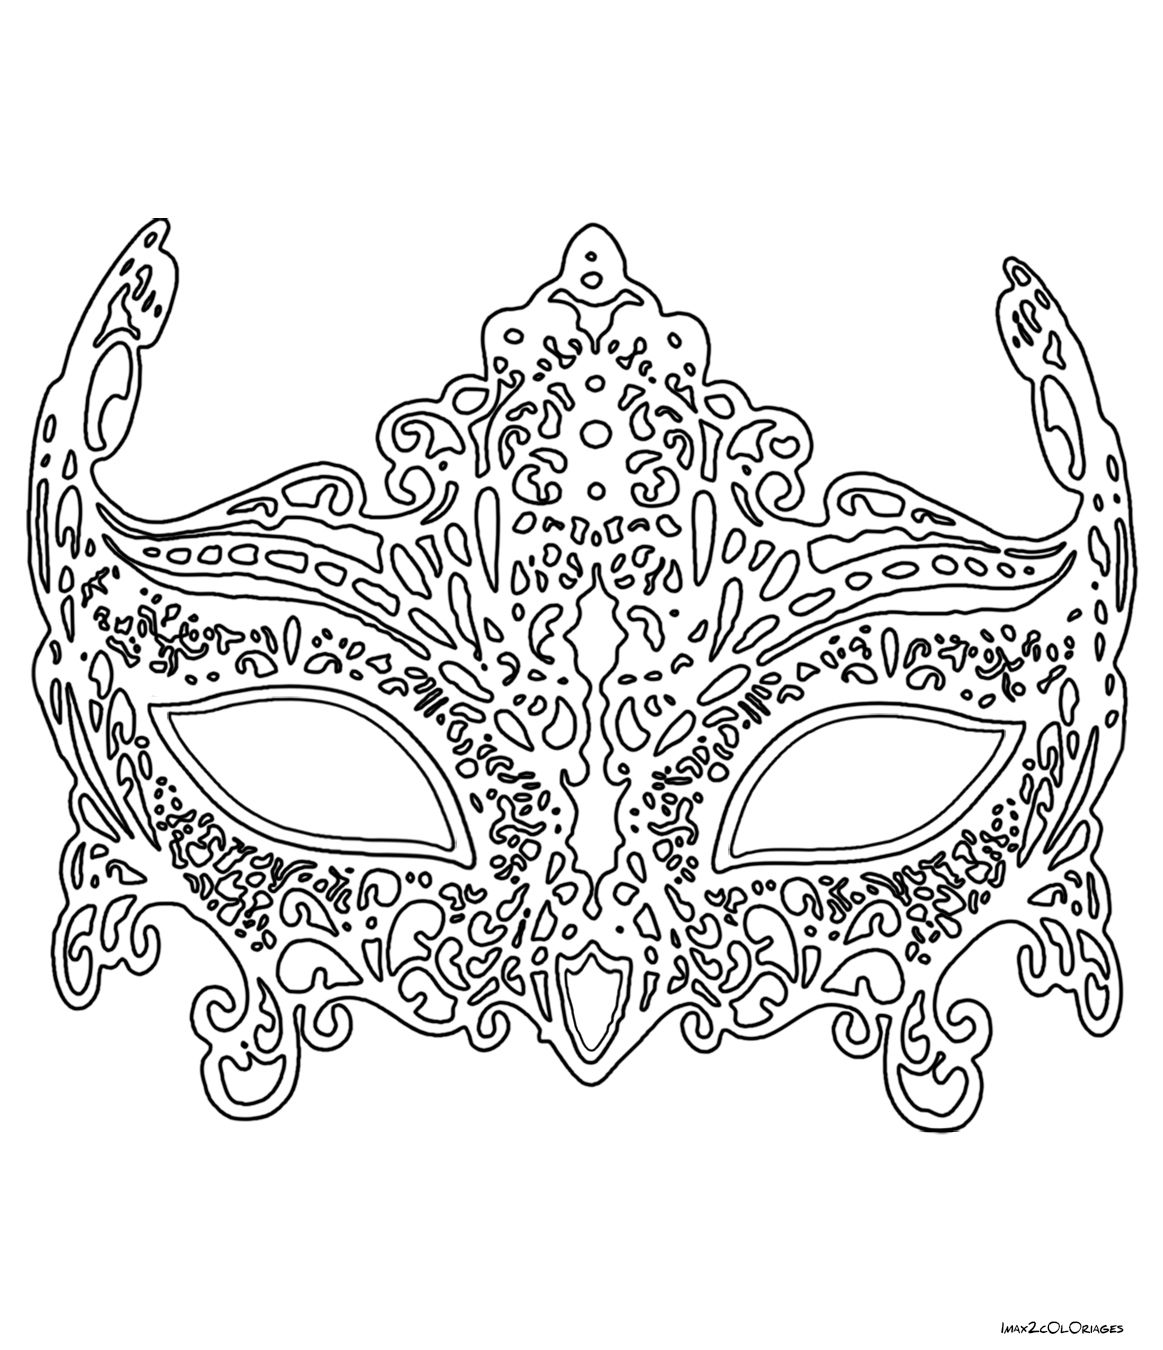 Coloriage masque de venise en dentelle clown pinterest adult coloring and masking - Coloriage masque ...